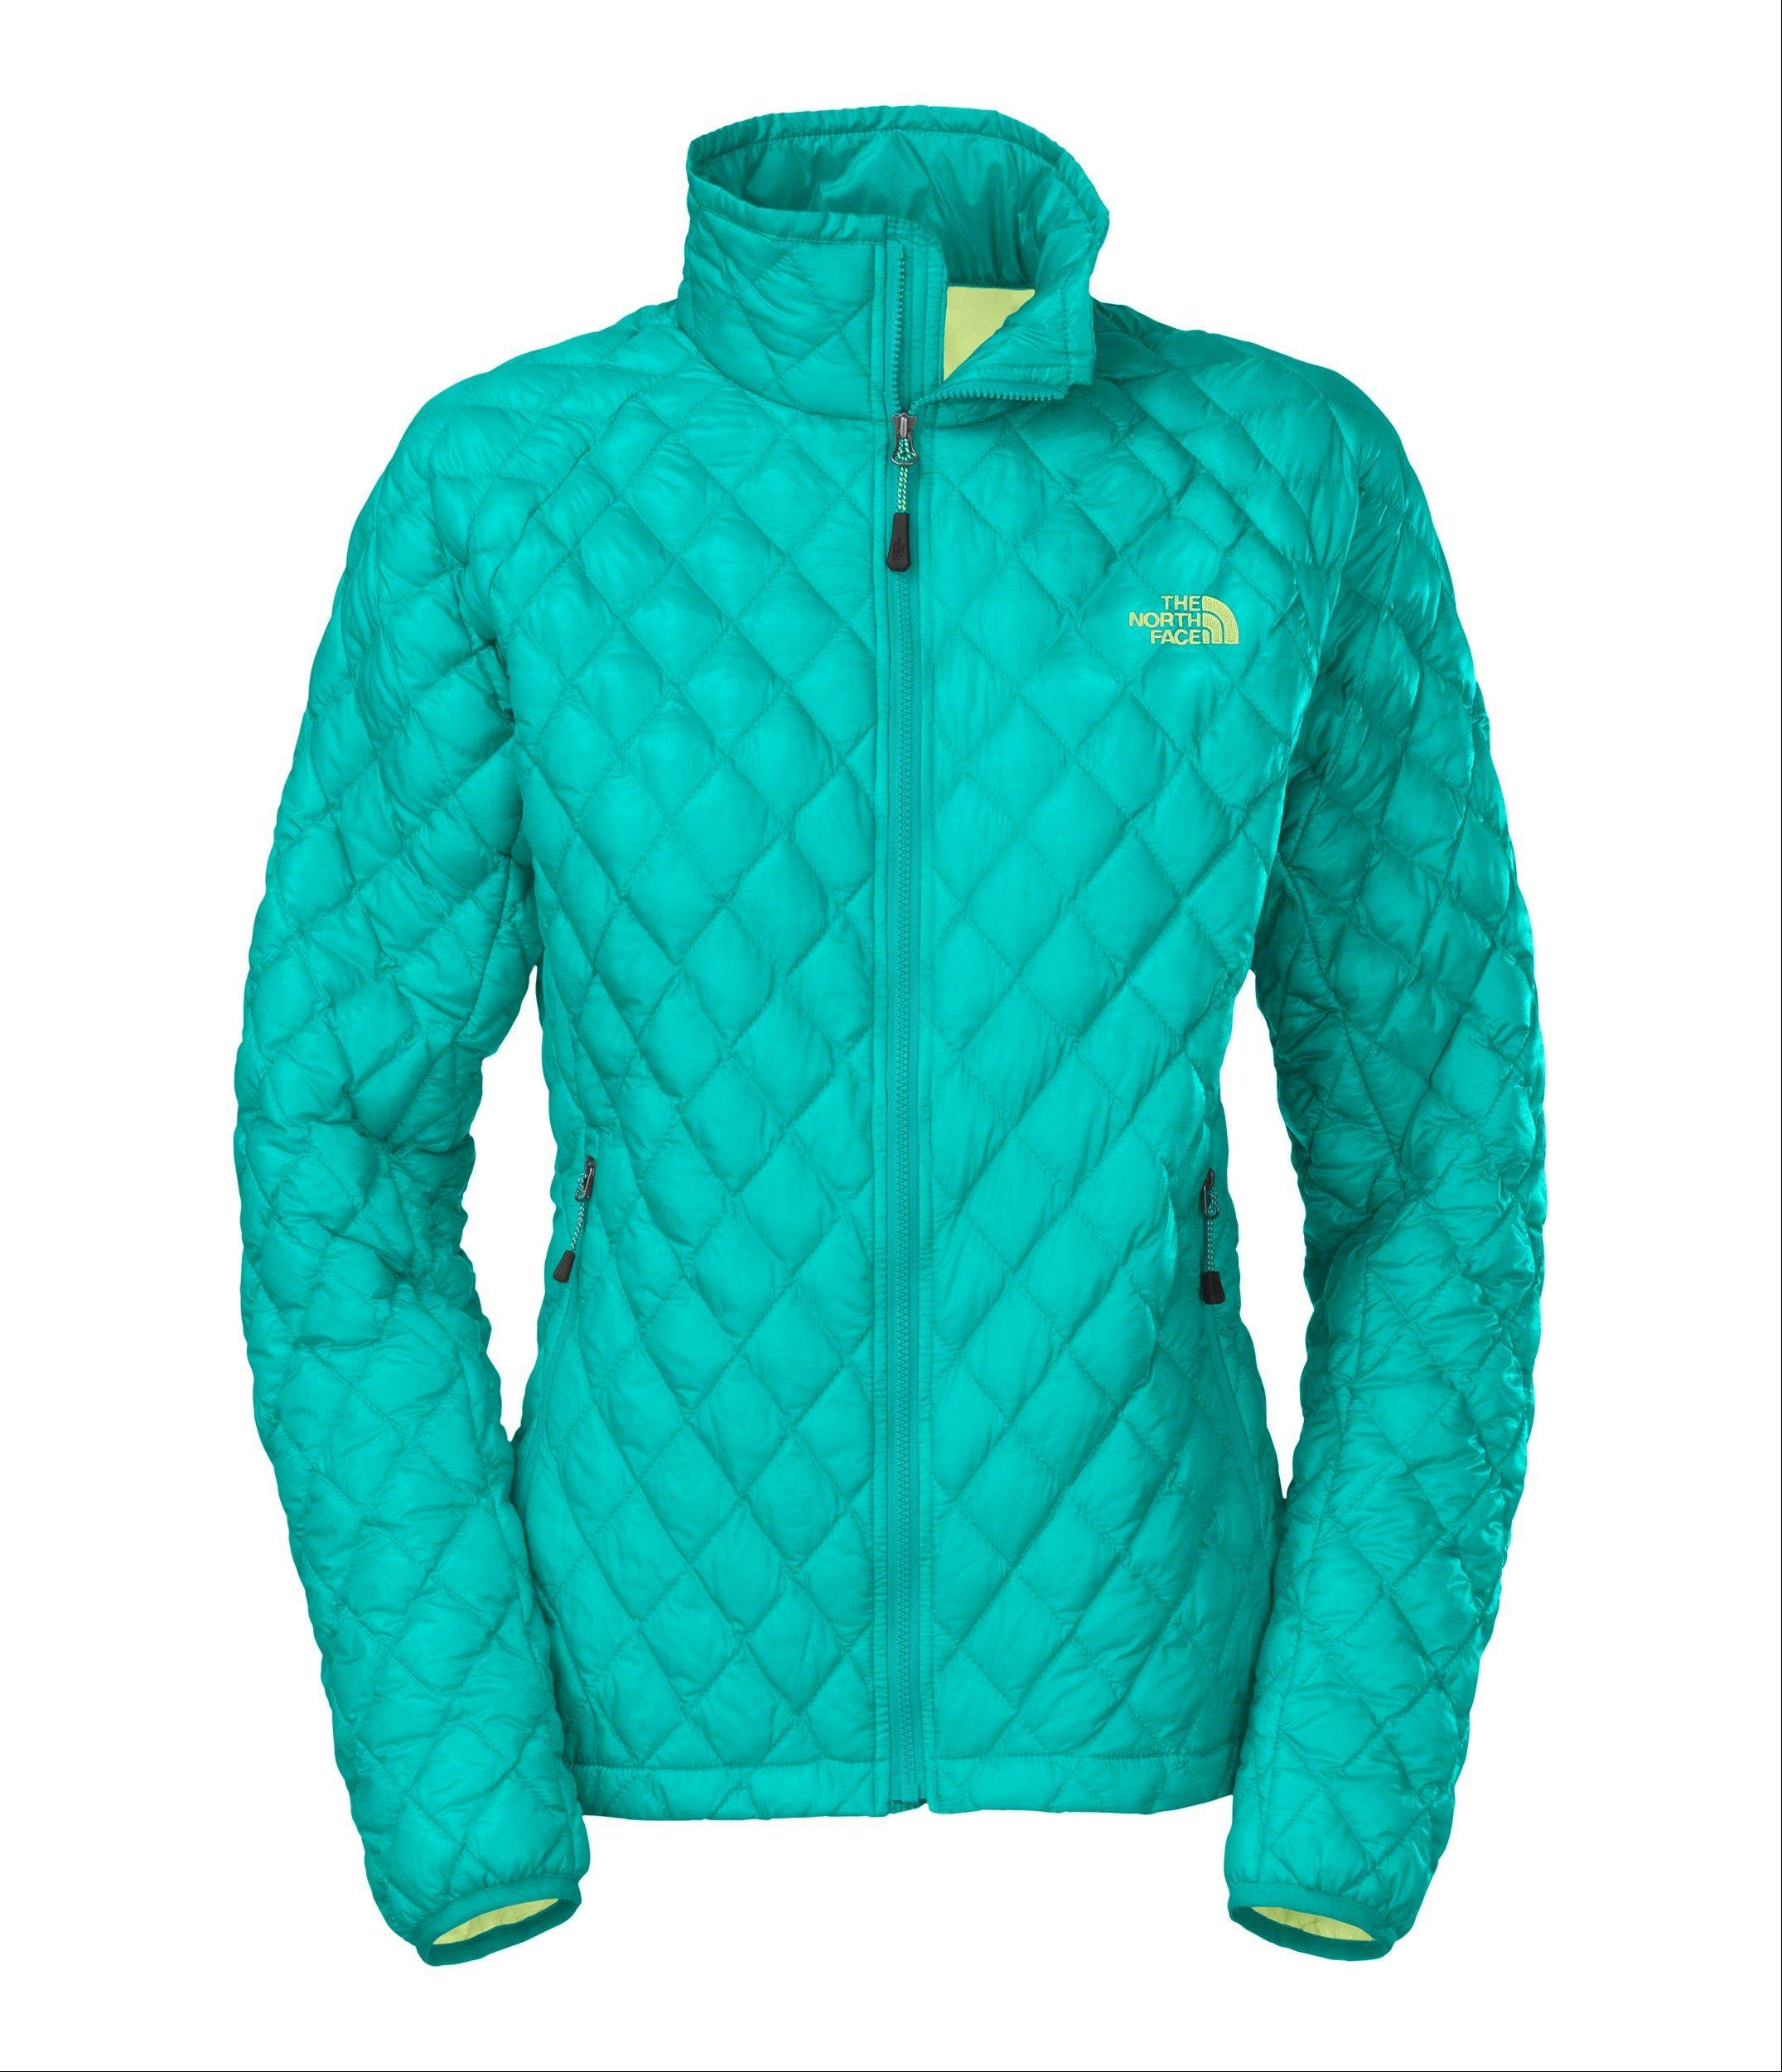 A women's ThermoBall full zip jacket now comes in borealis blue. Bright is the new black when it comes to colors and styles for snow bunnies to look their best on the slopes.